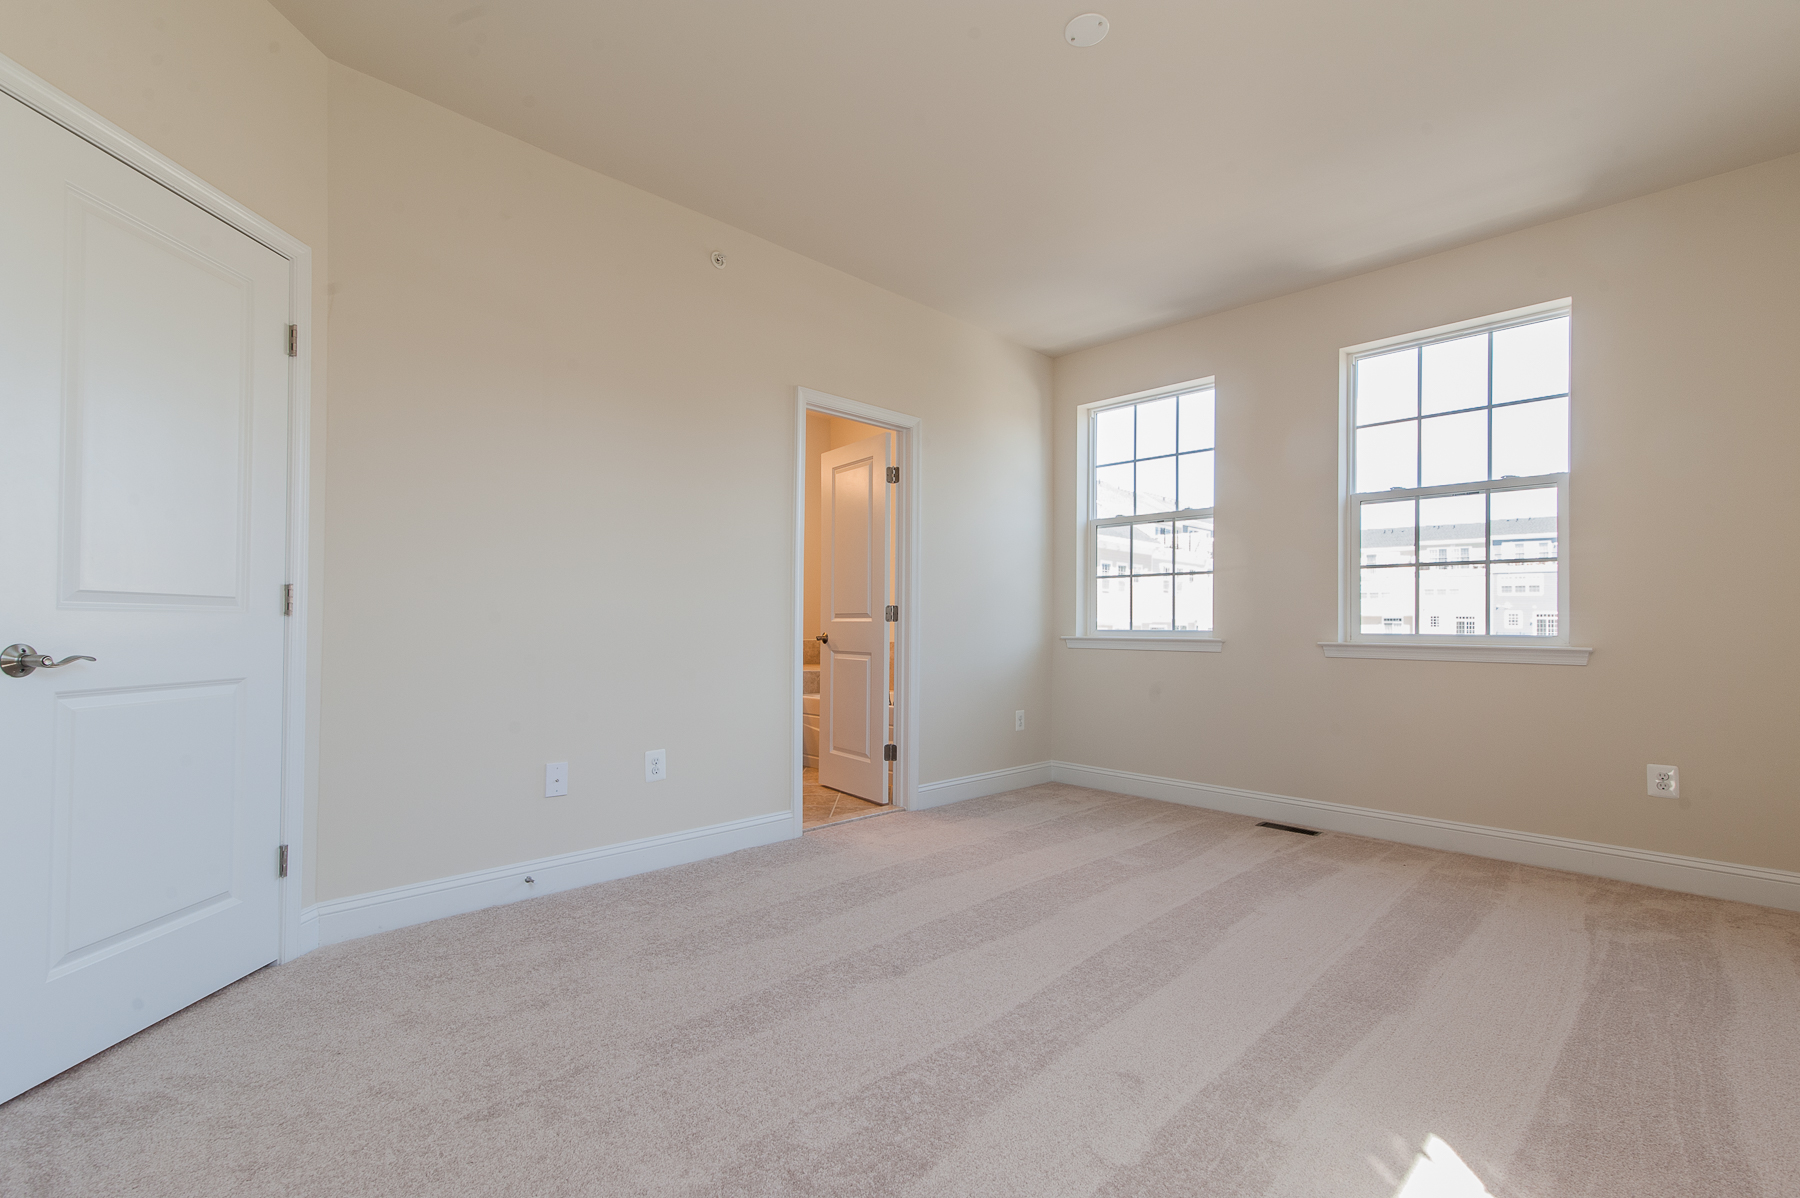 Additional photo for property listing at Towson Green-York Duplex 200 Meridian Lane Towson, Maryland 21286 United States